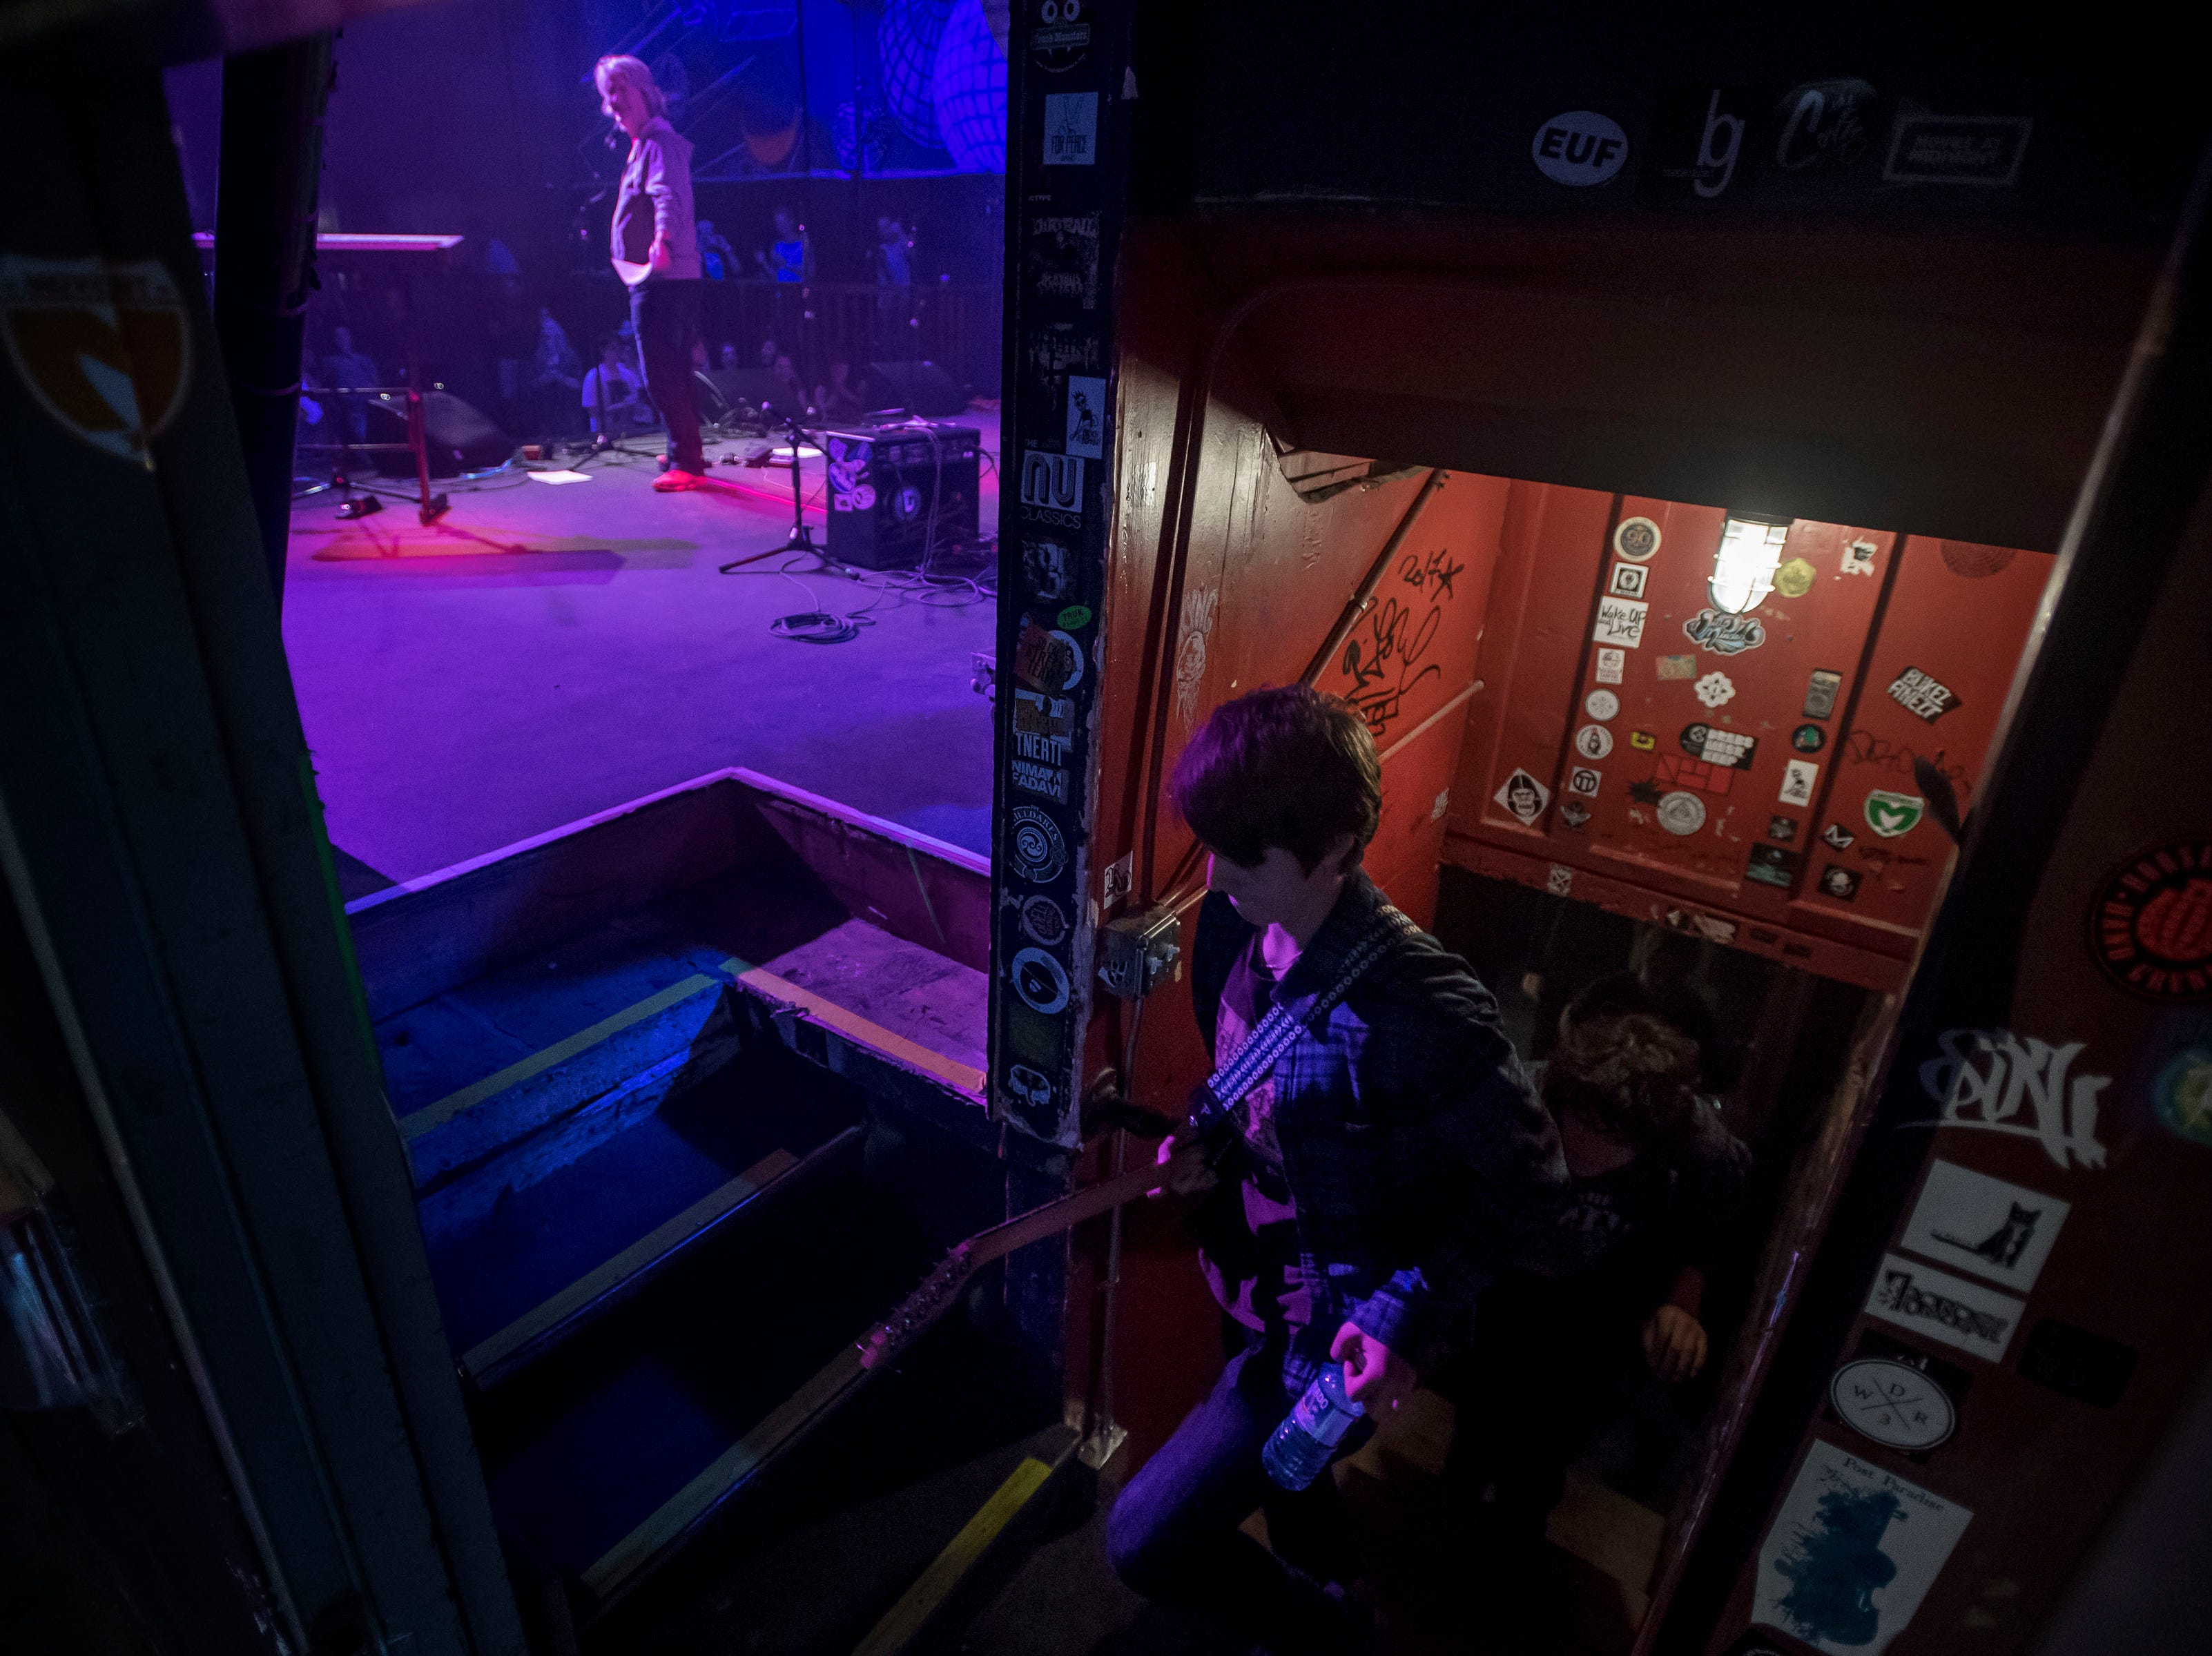 My Dog Ate Chad takes the stage at the Aggie Theatre during the FoCoMX XI music festival on Friday, April 26, 2019, in Fort Collins, Colo.